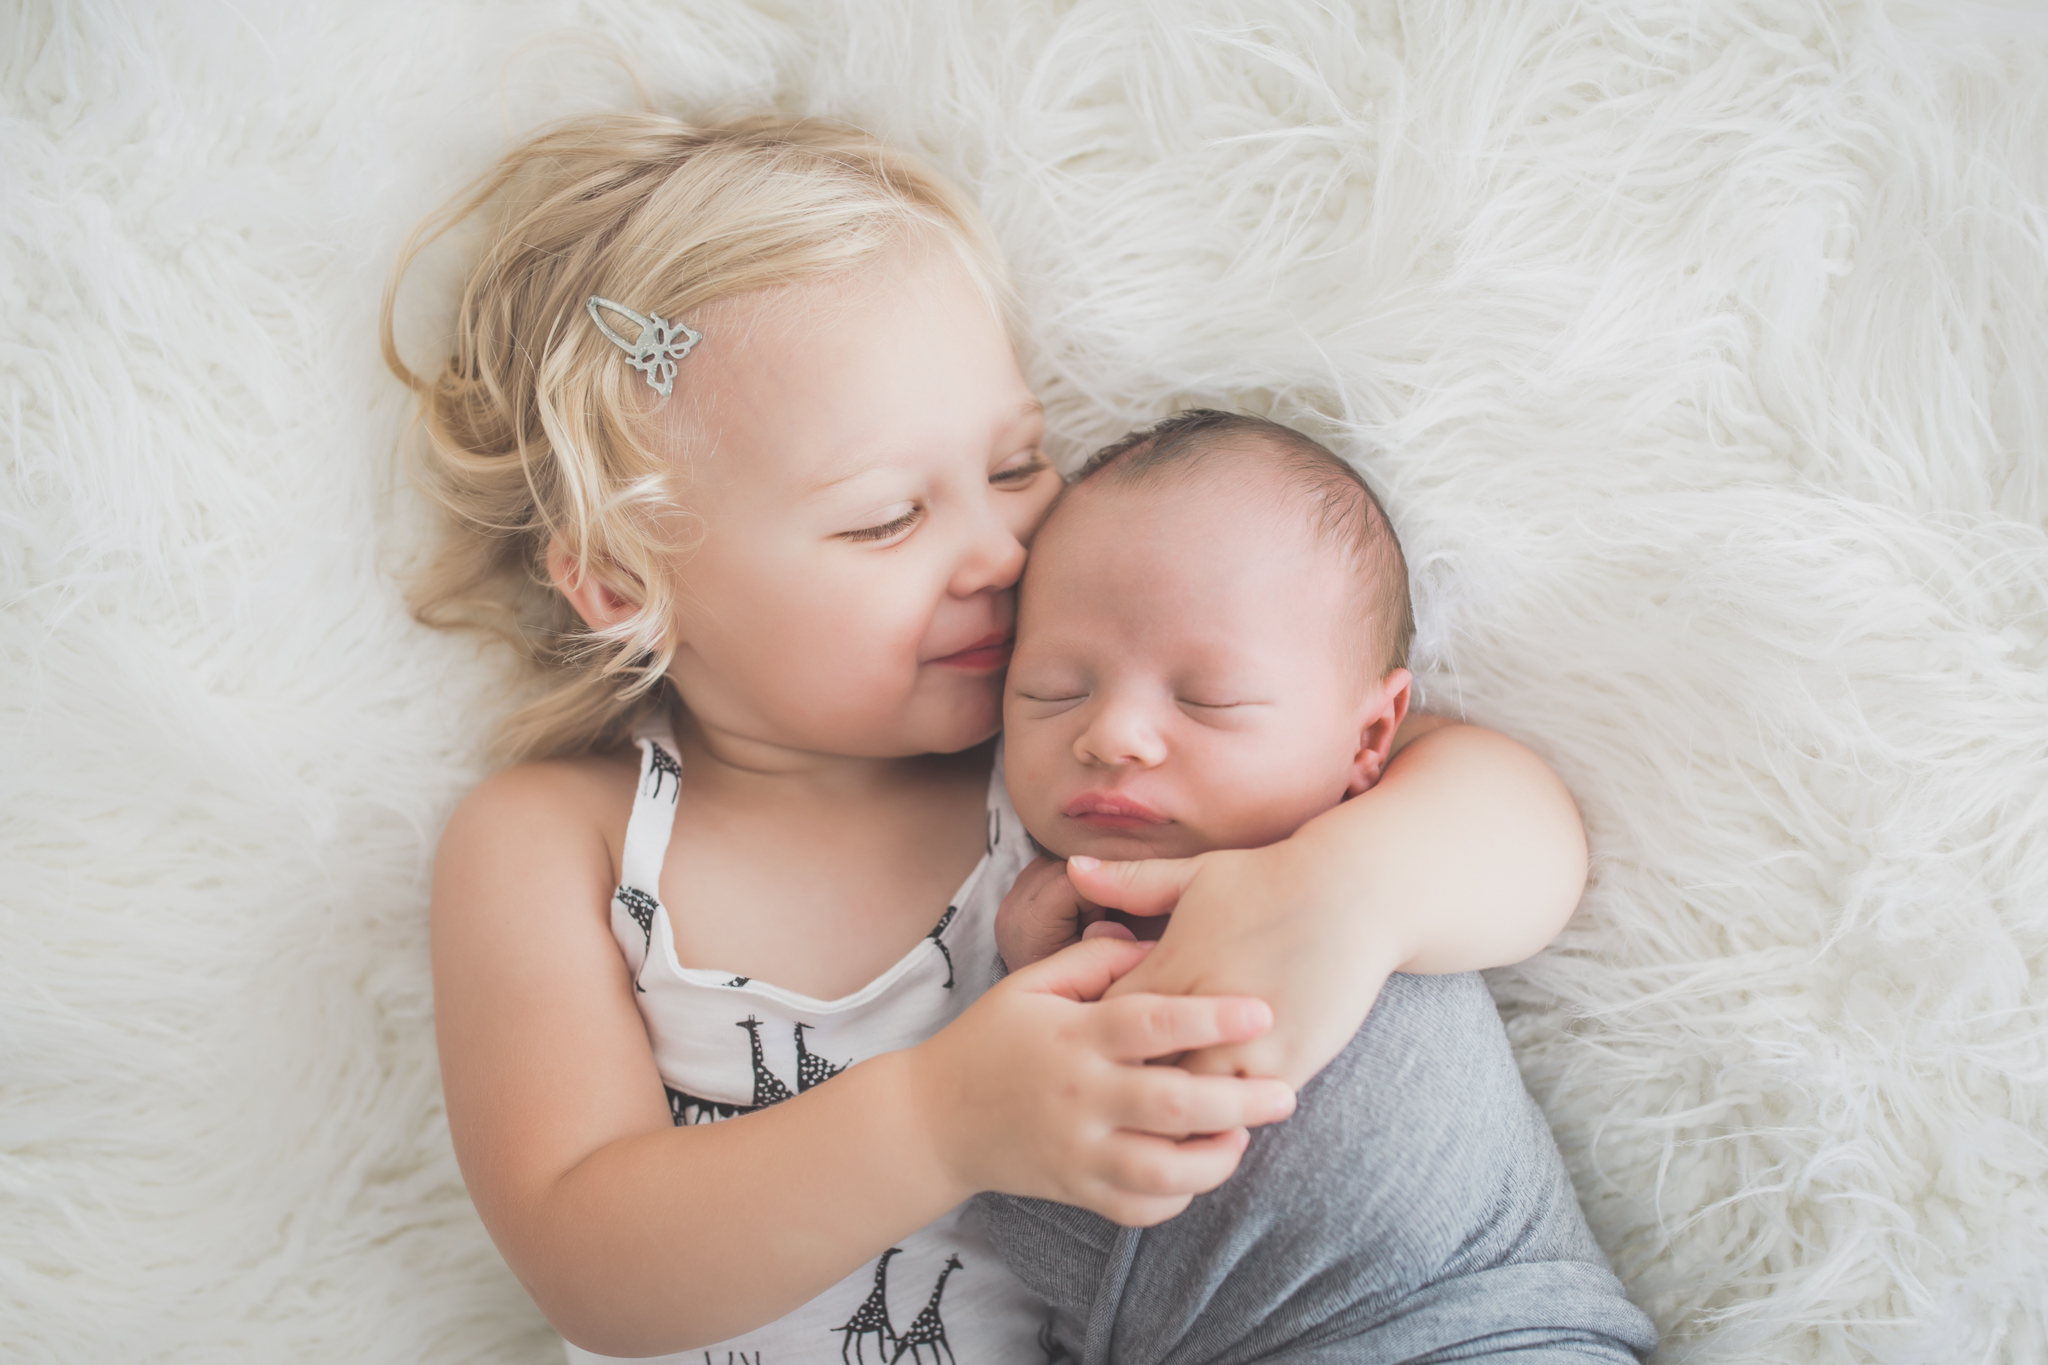 Sibling photos Newborn session photographer lifestyle studio - Cara Peterson Photography Rockford IL-6-2.jpg